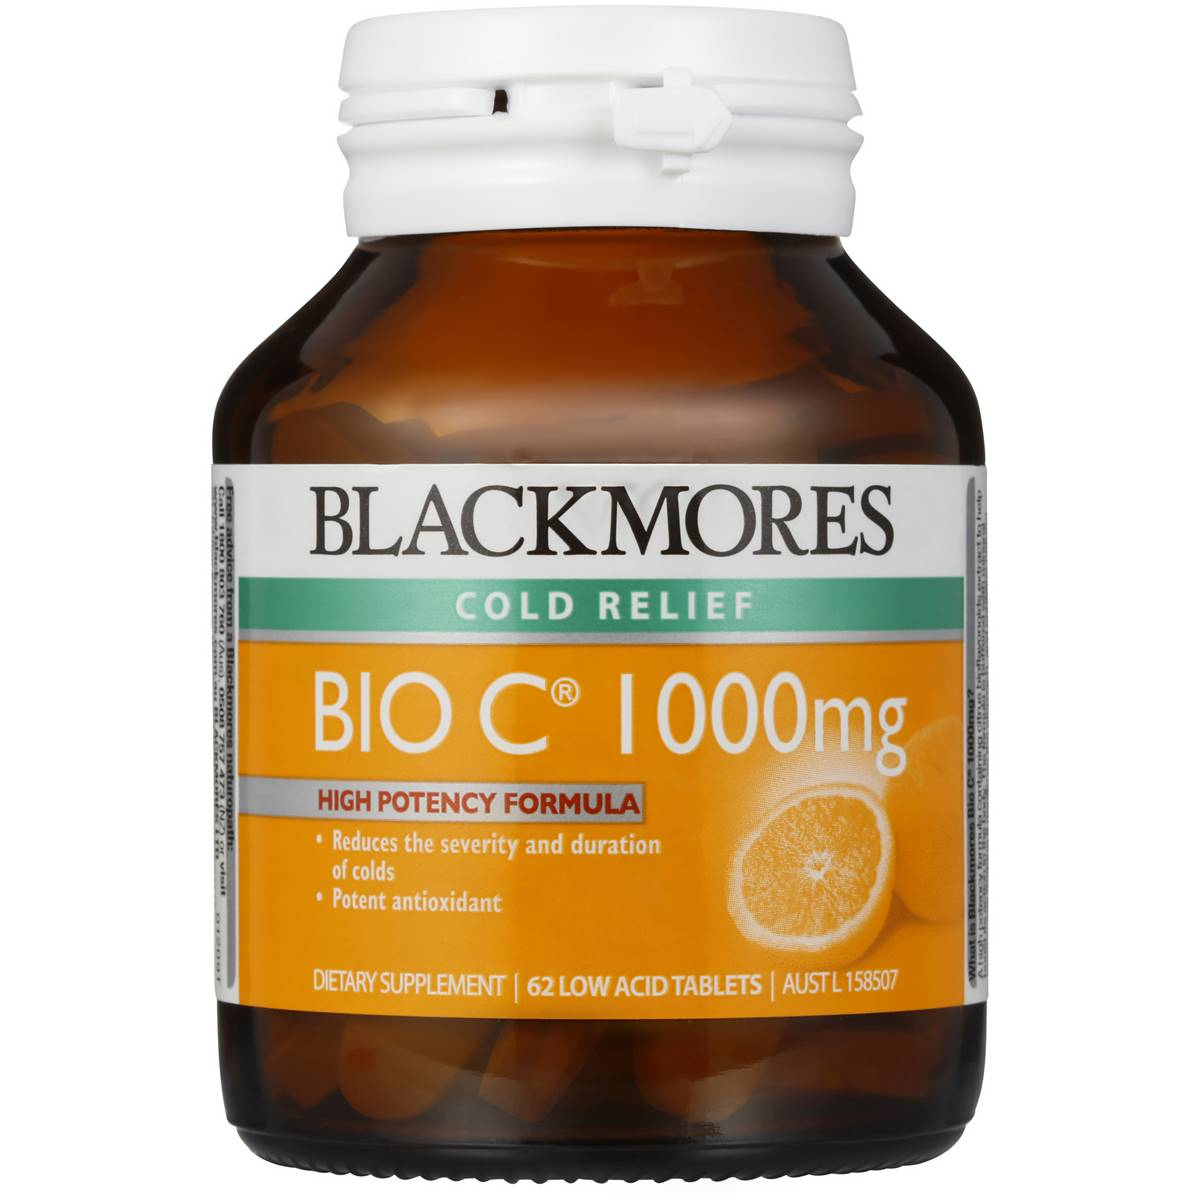 Blackmores Bio C 1000mg 62 Tablets Vitamin C